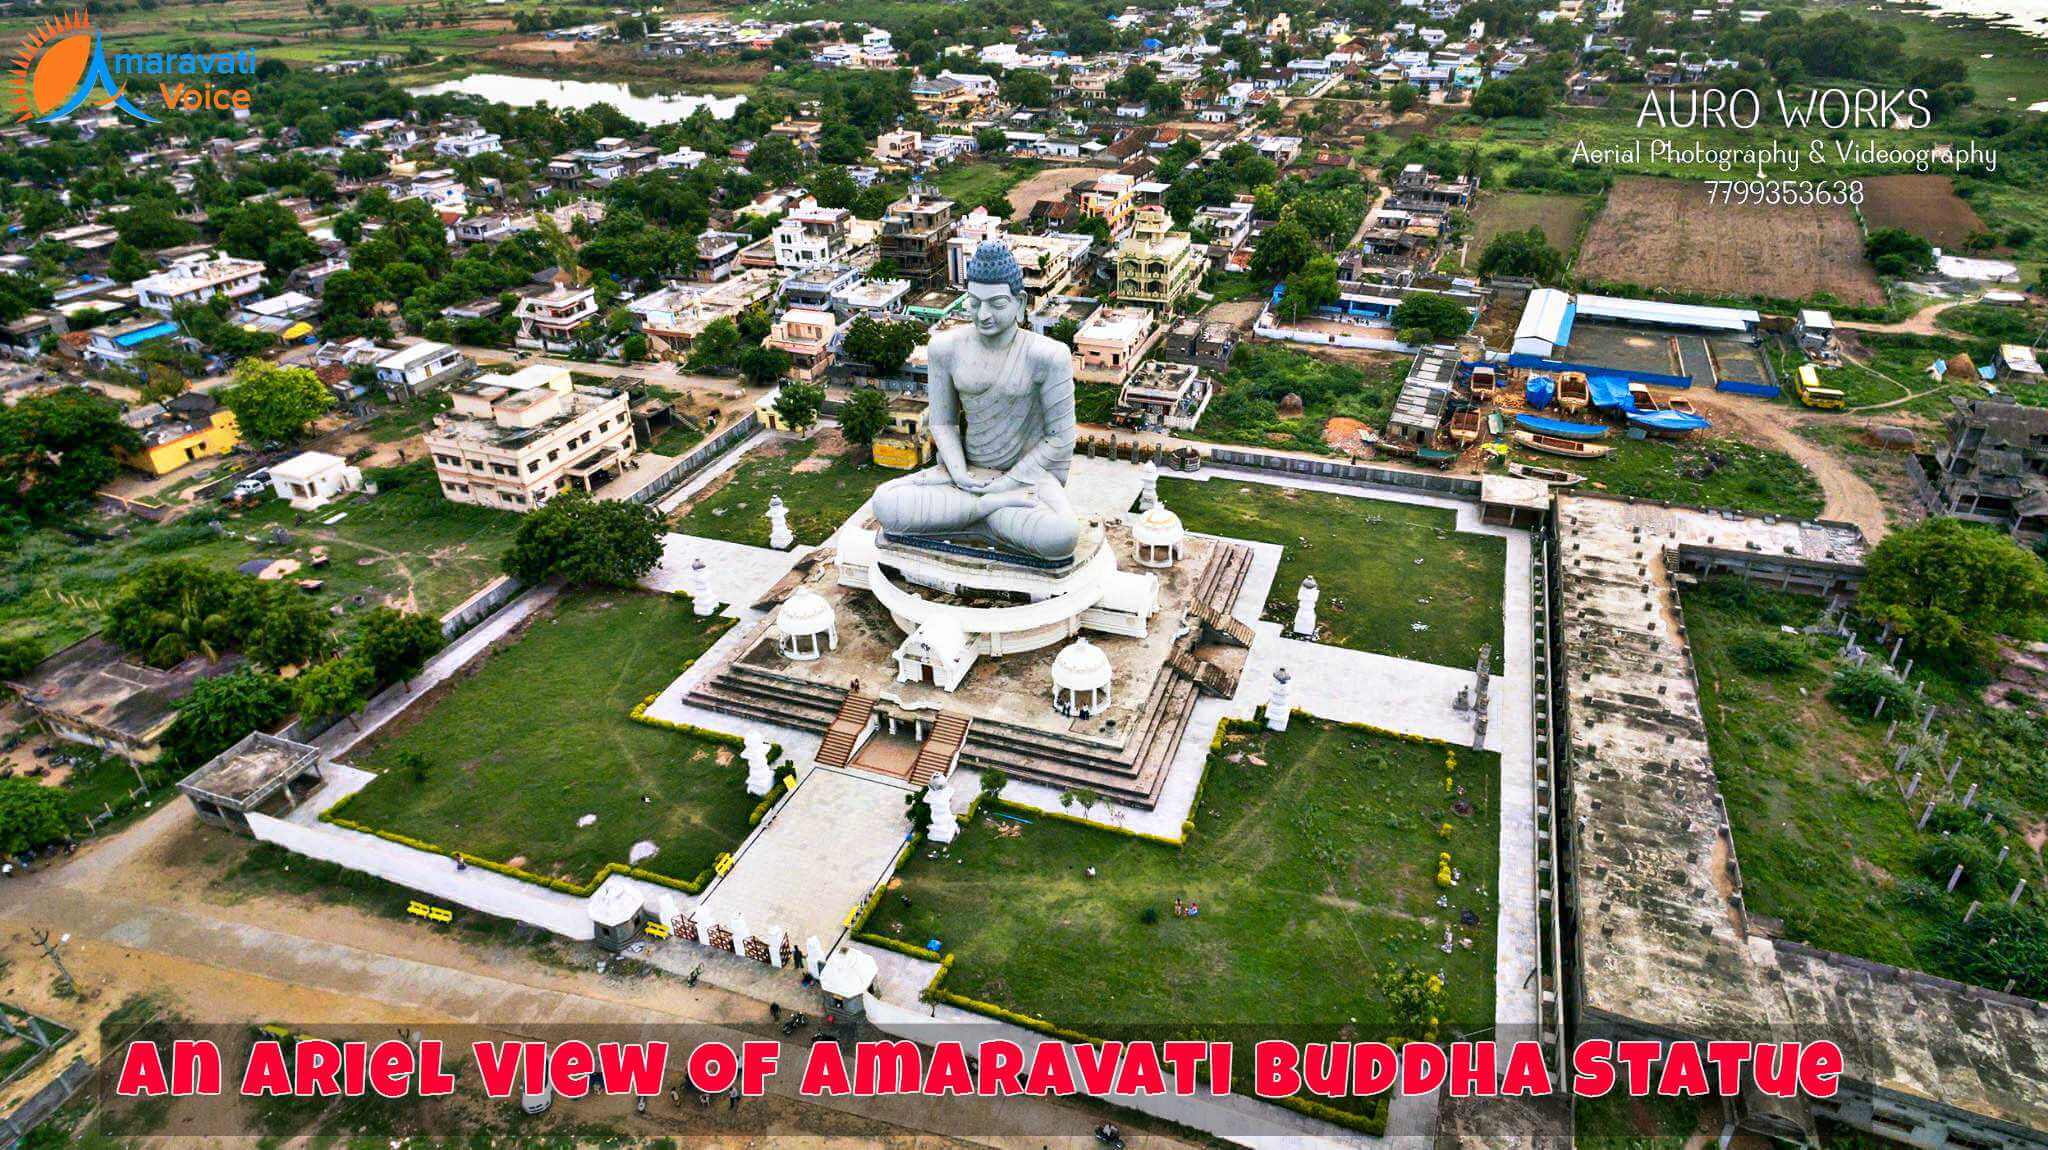 An Arial View of Buddha Statue in Amaravati